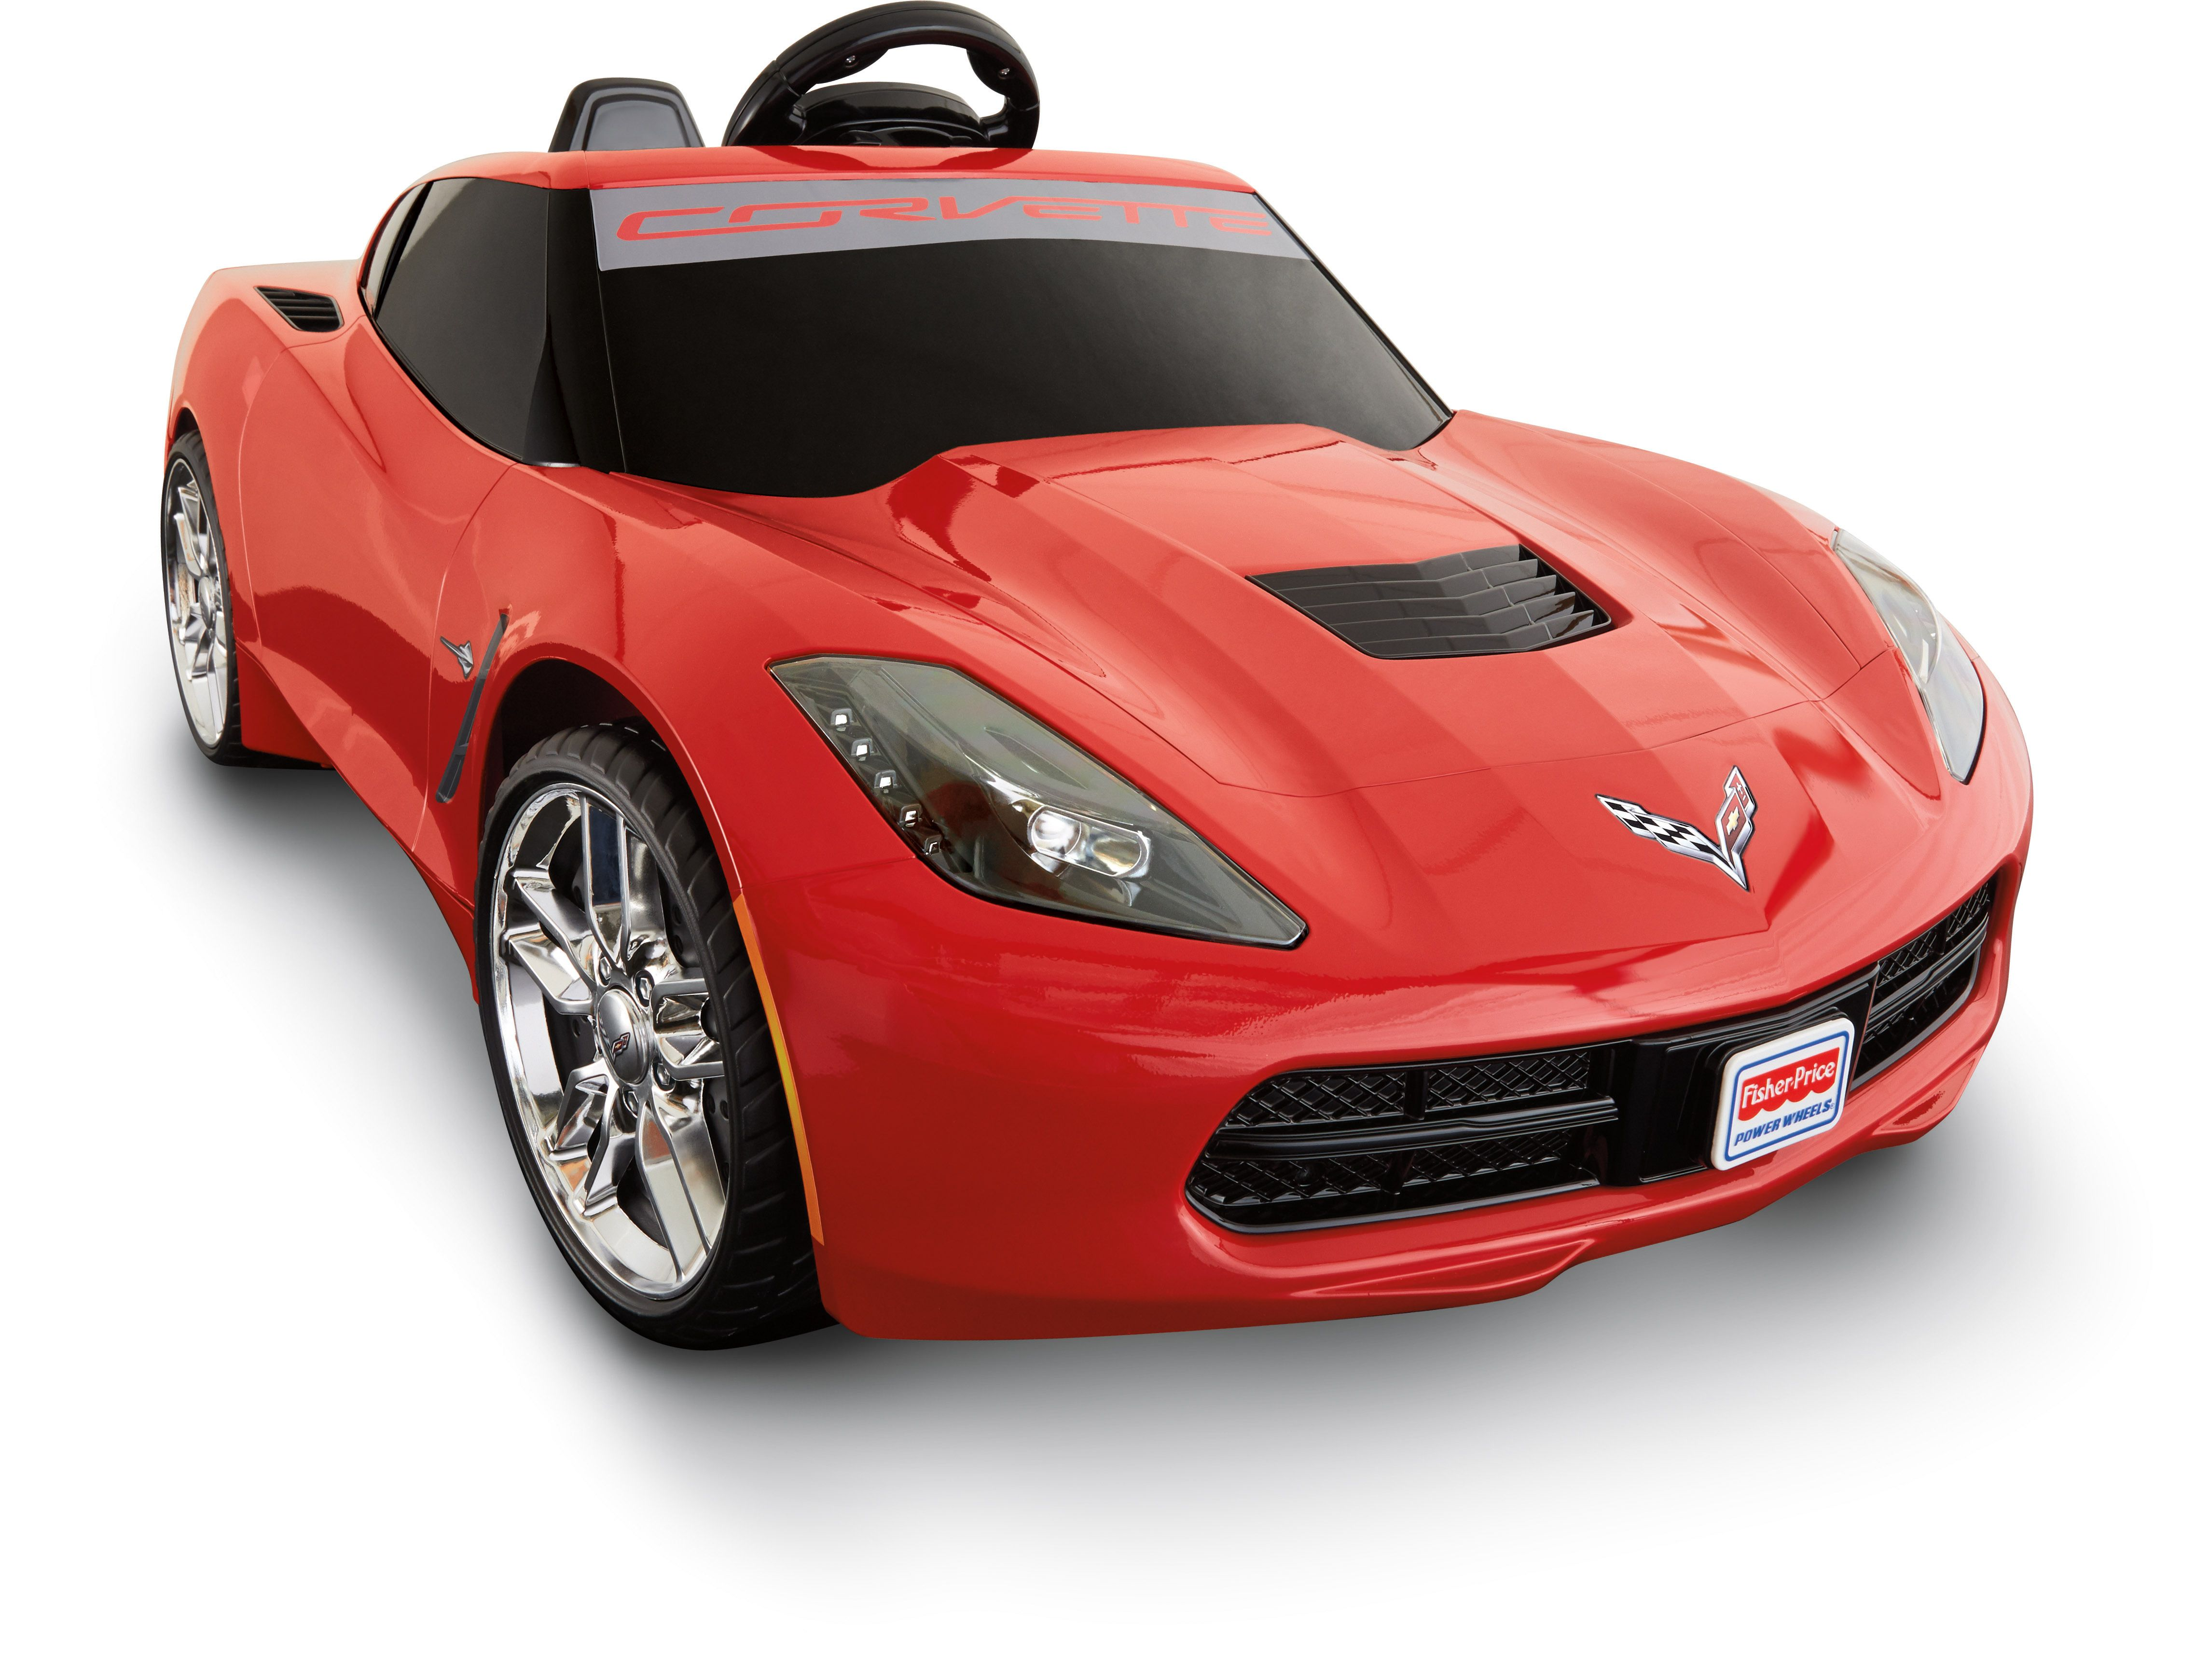 This 2014 Corvette Stingray only costs 275 2014